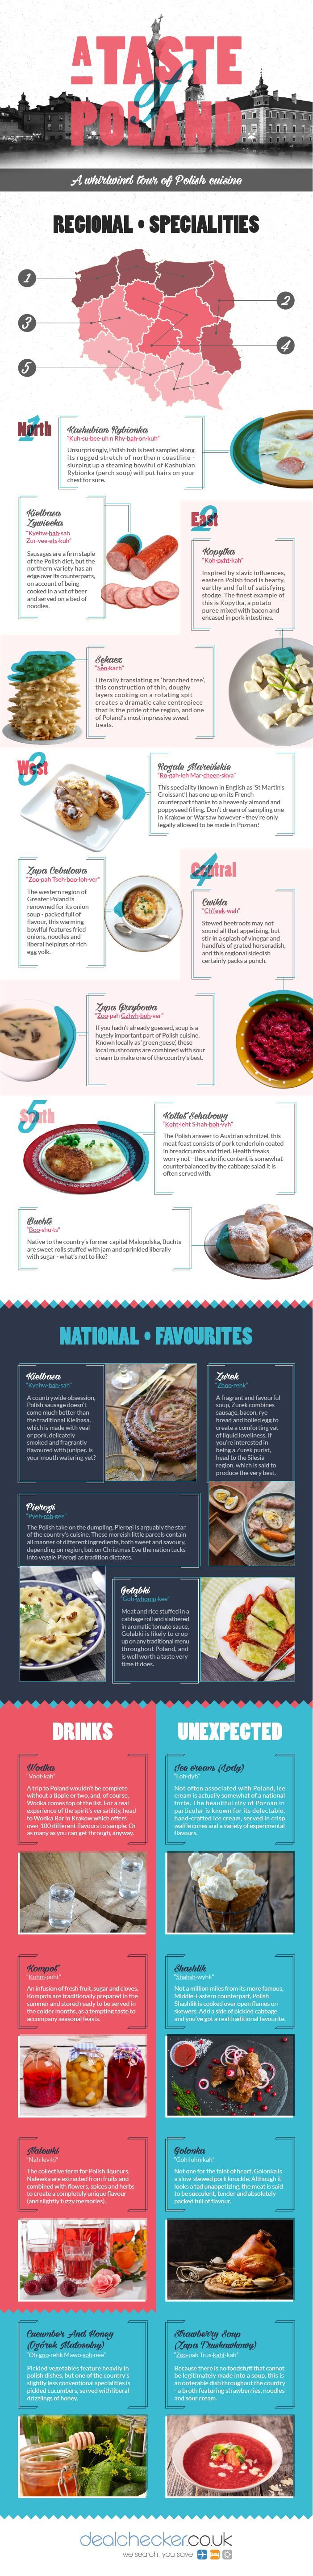 What You Should Be Eating When In Poland - Infographic